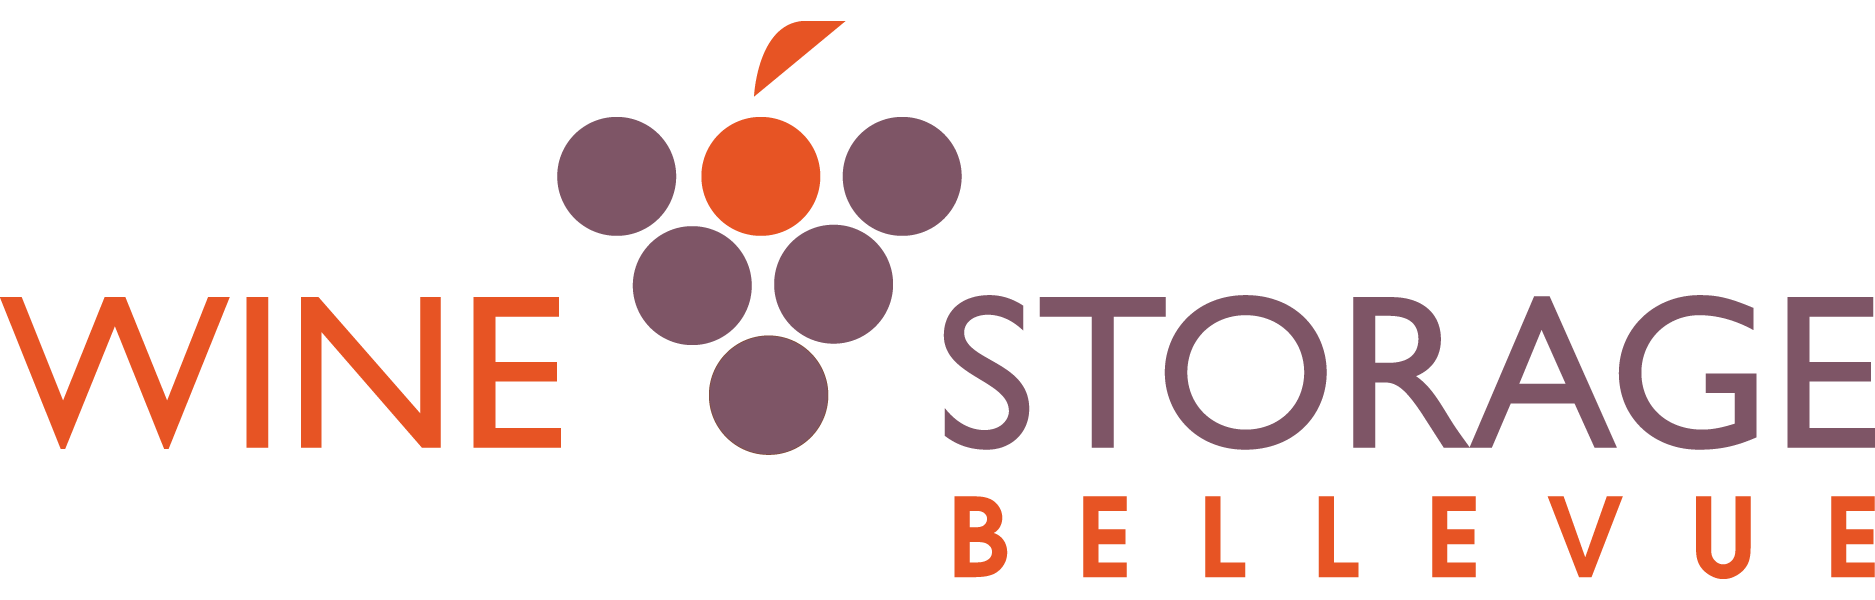 logo_wine_storage_bellevue_updated_color